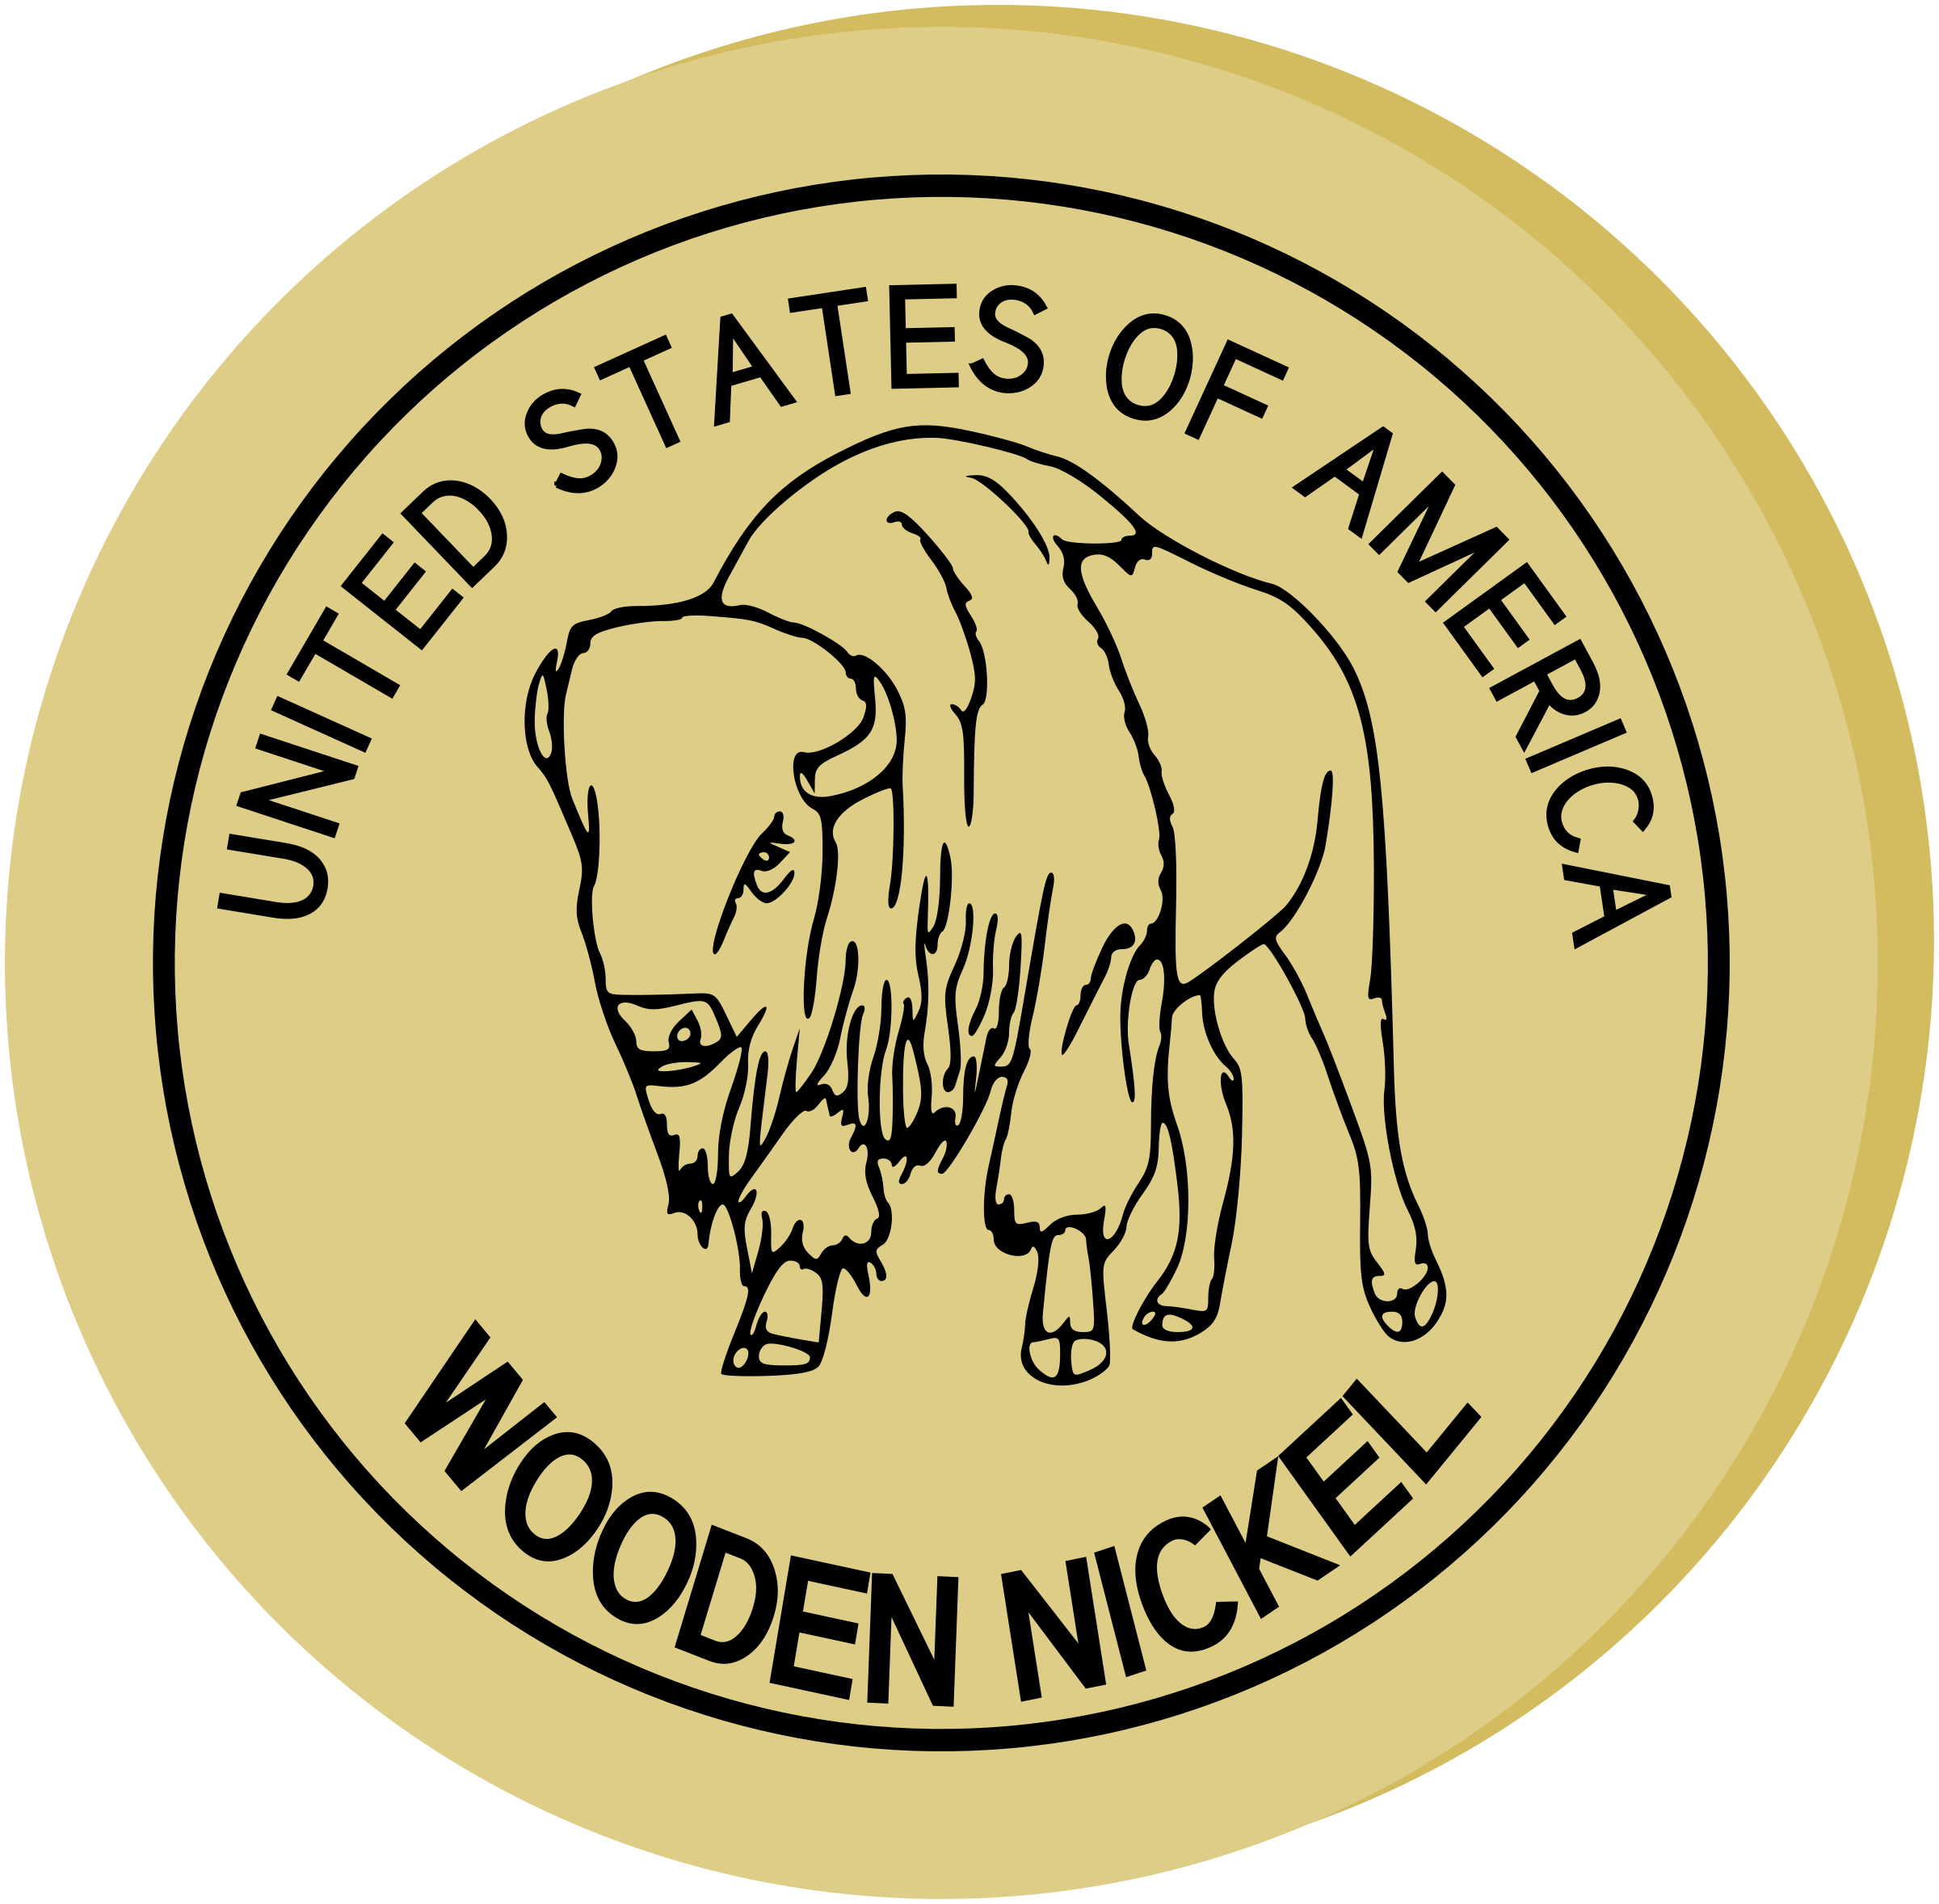 Wooden Nickel by mazeo